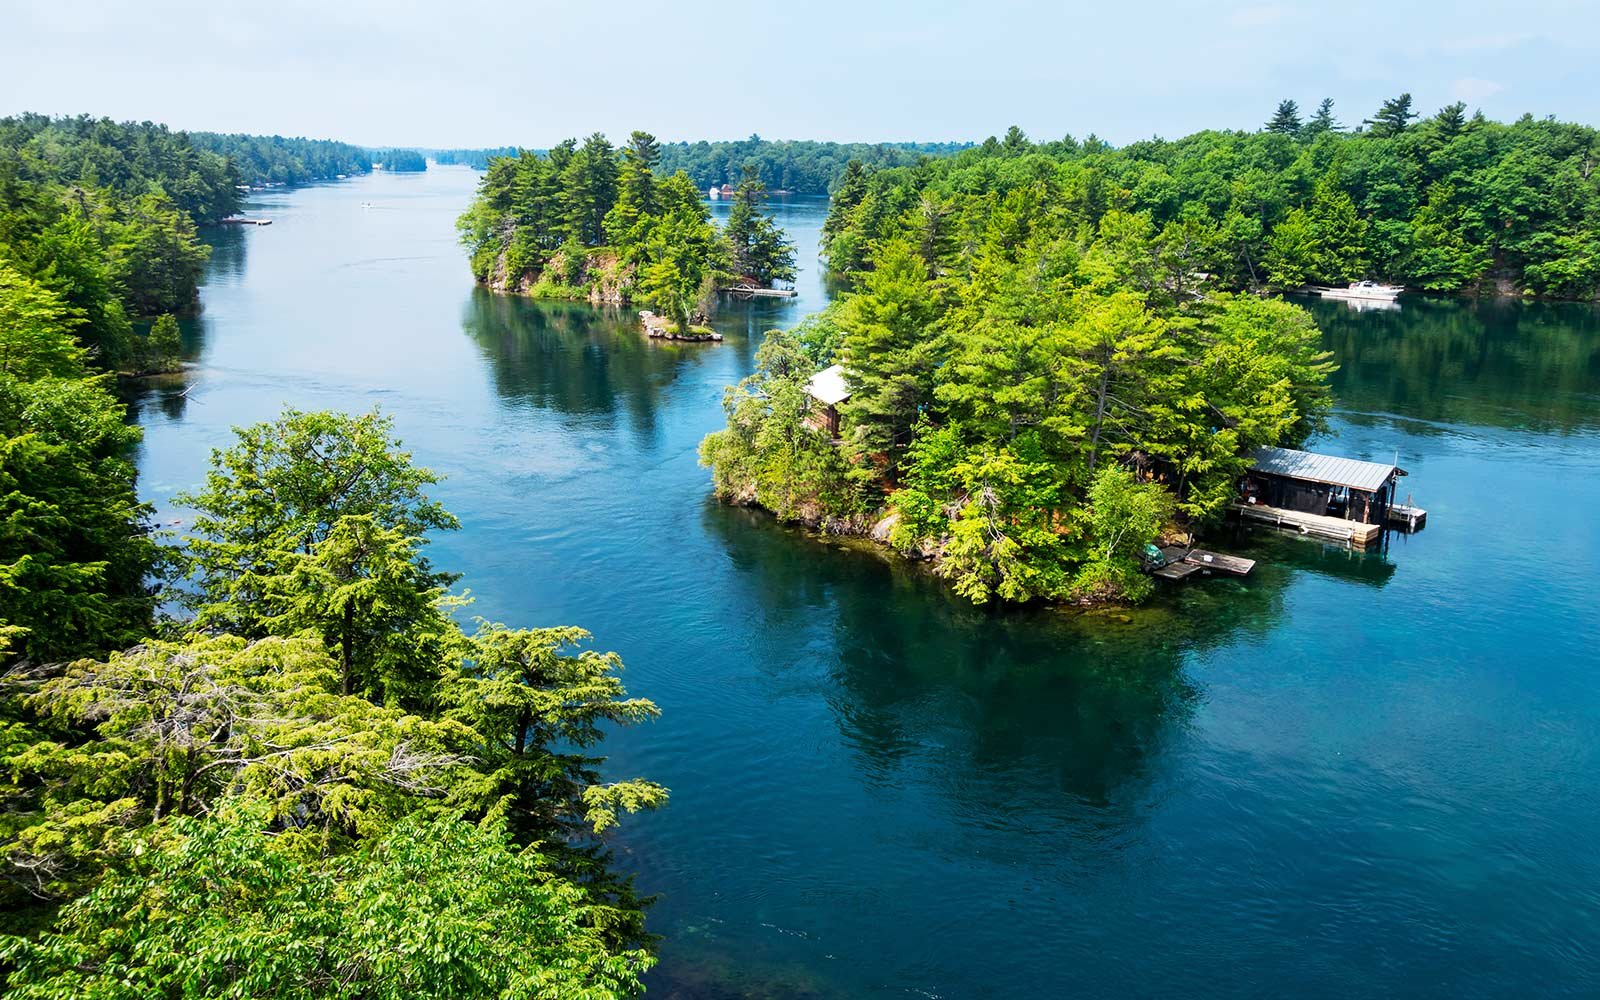 St Lawrence River and islands with cottages at Thousand Islands National Park, located between Ontario Canada and New York State USA.